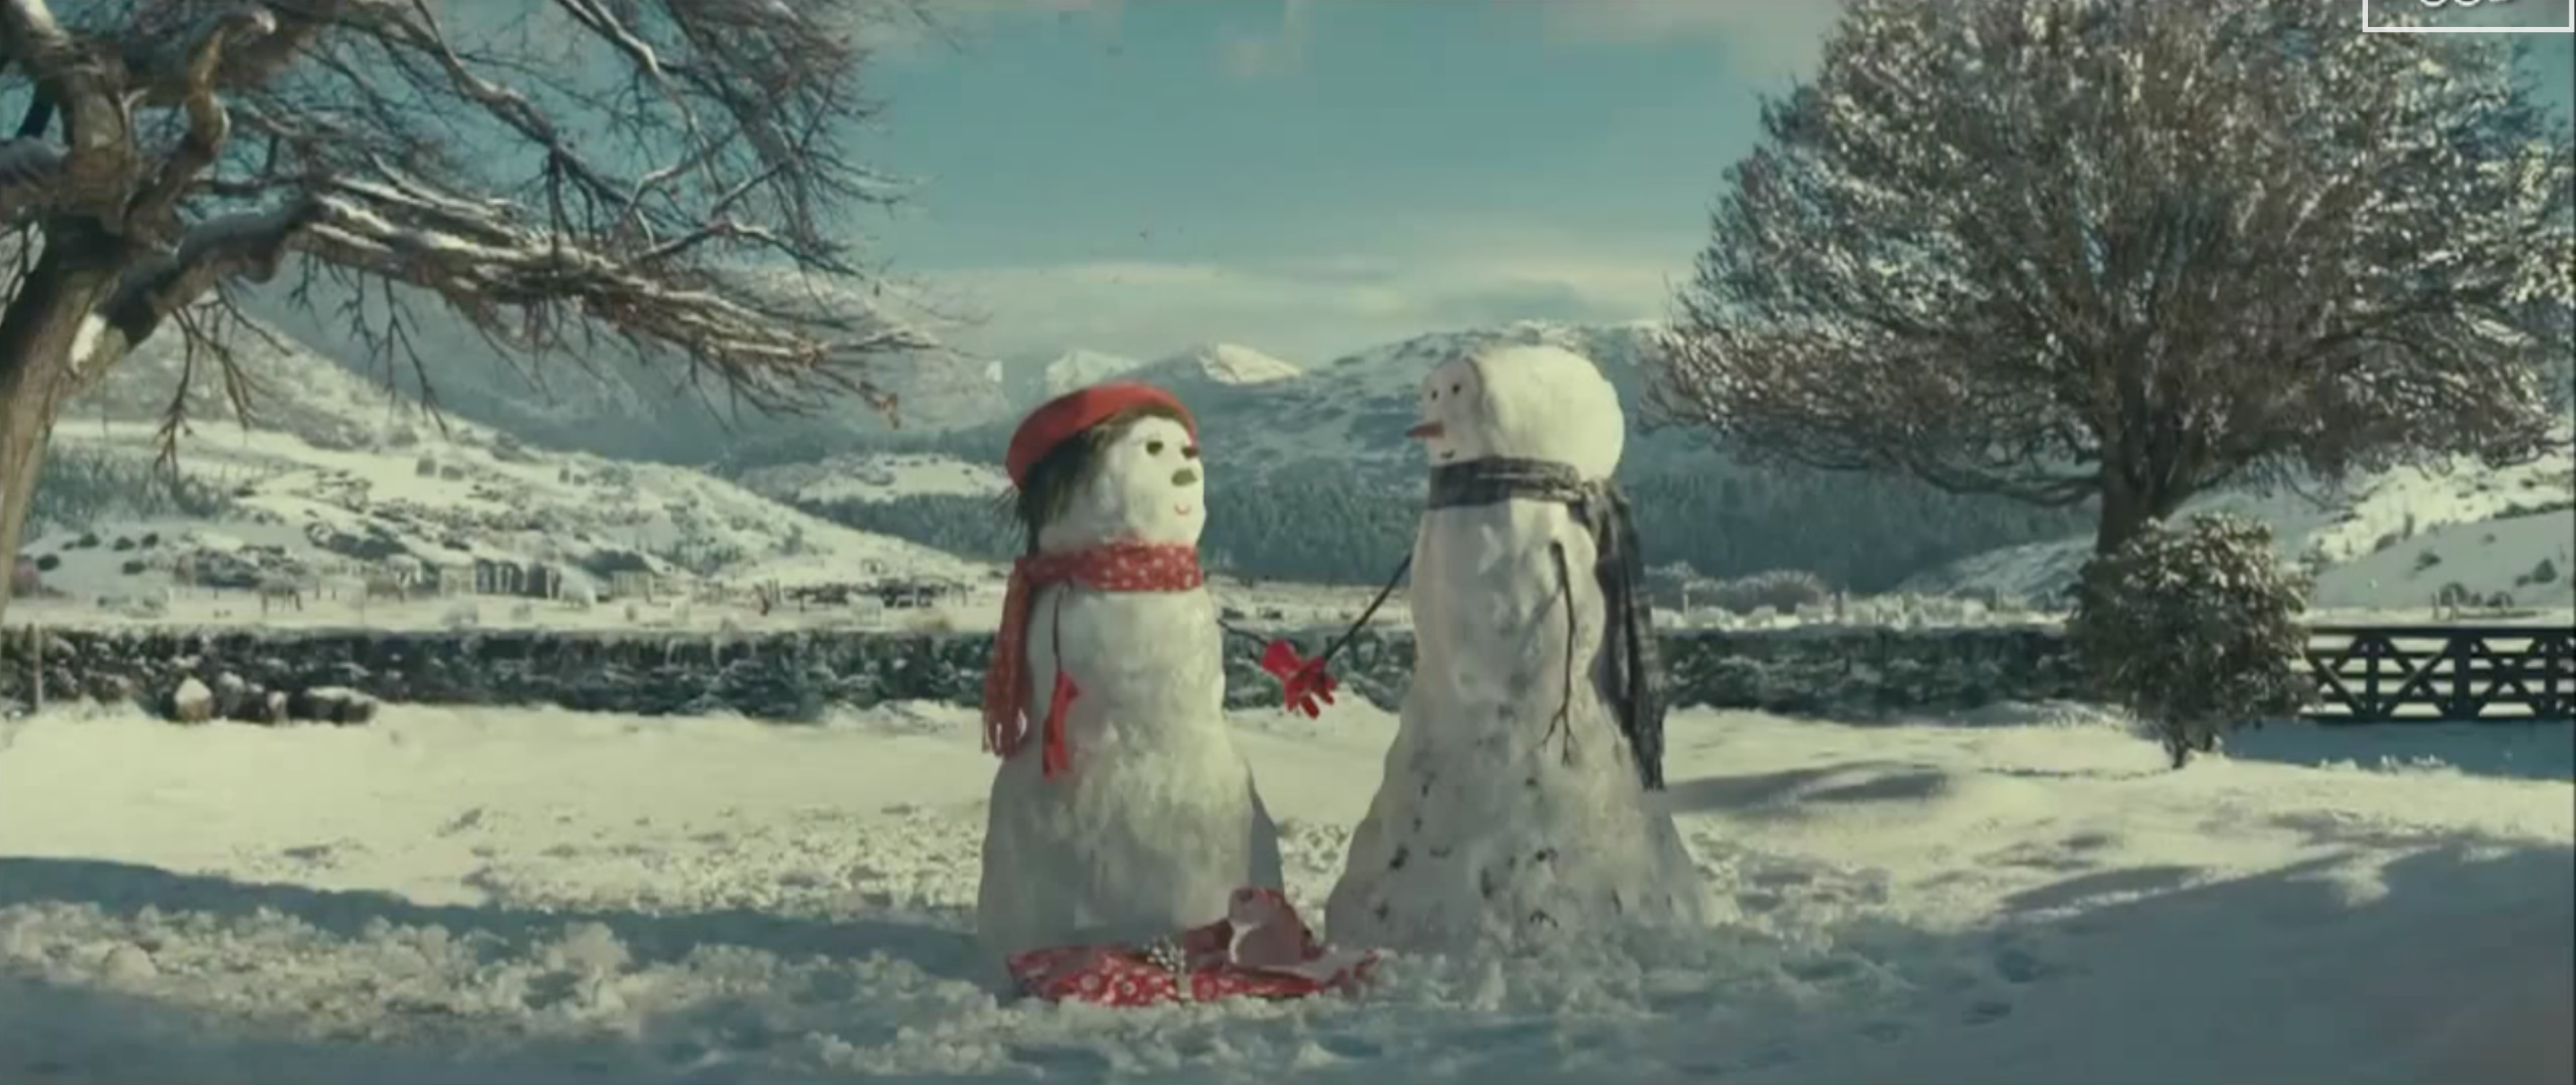 johnlewis com christmas advert analysis